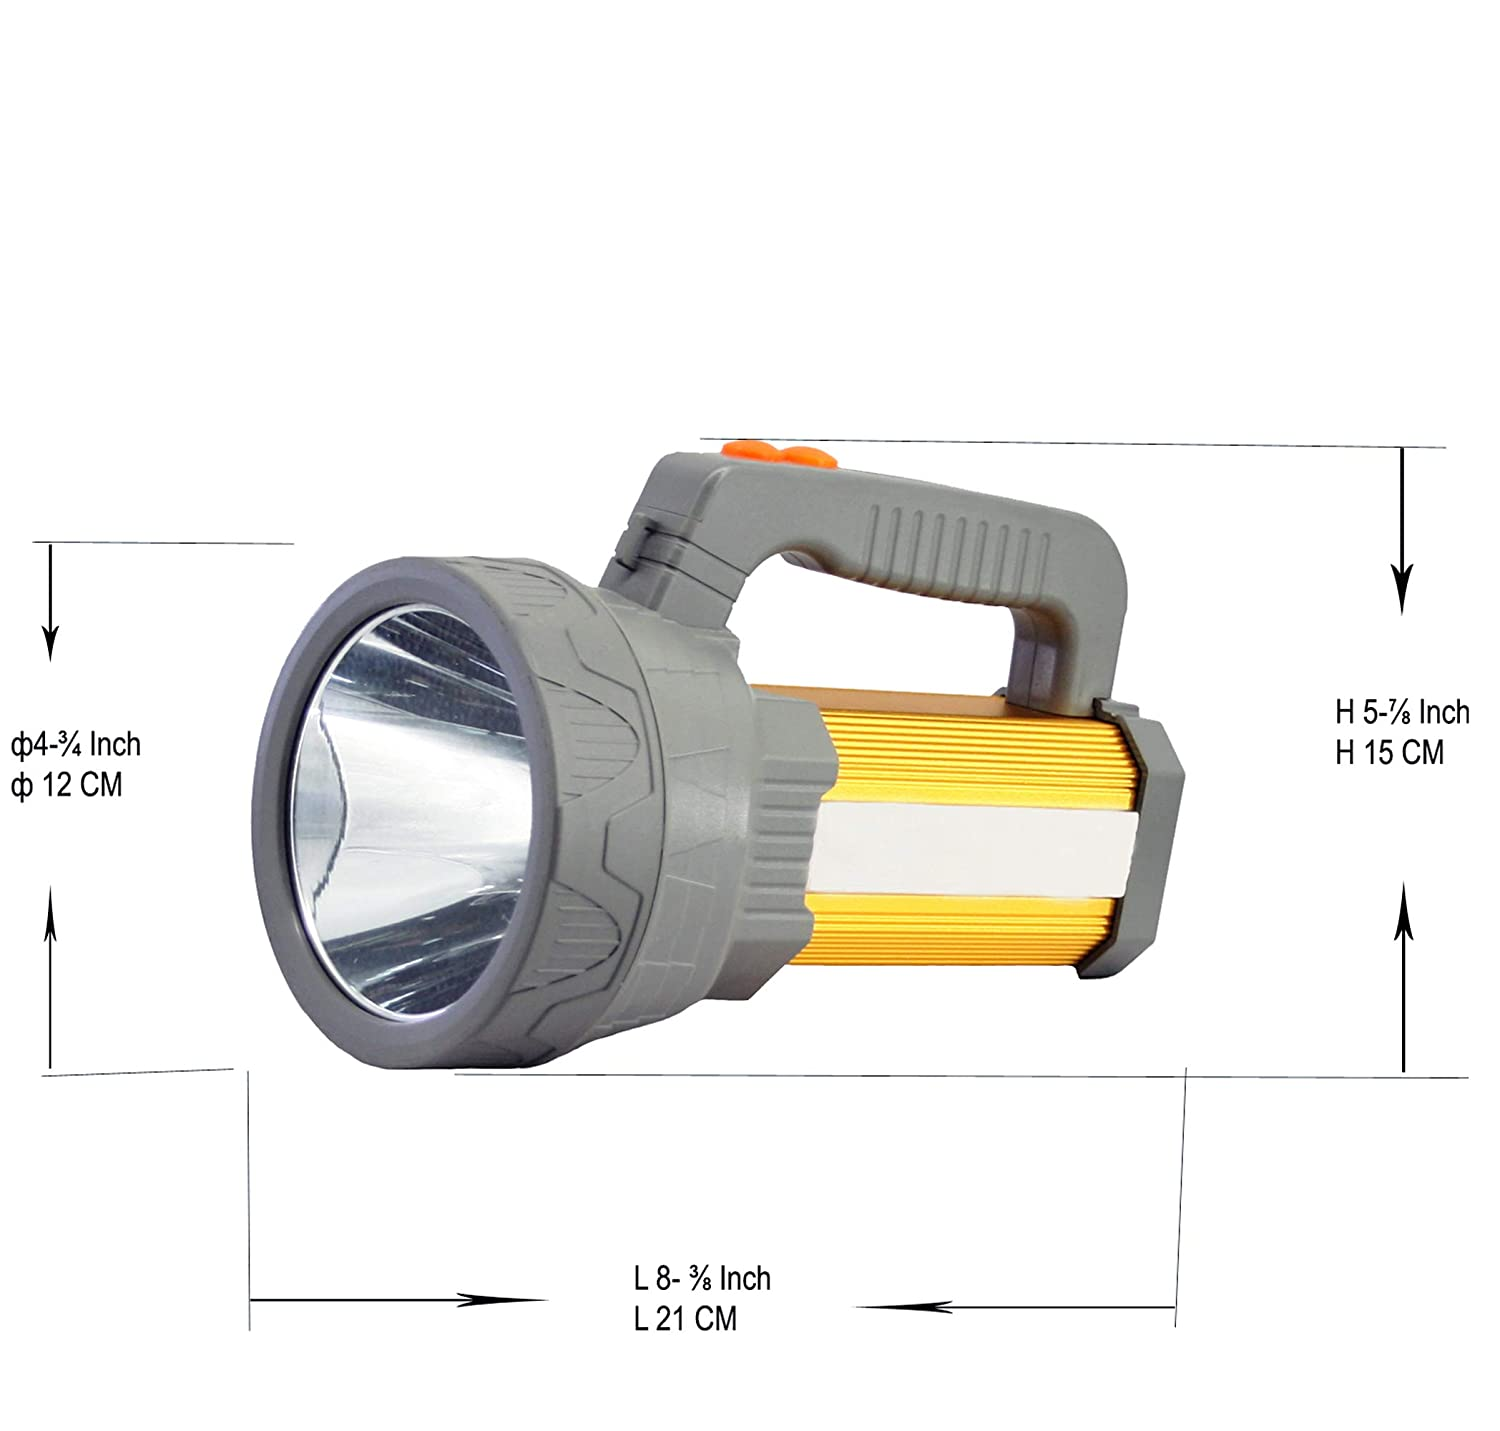 Flashlights & Torches Portable Lighting Outdoor Portable Led Flashlight Battery Powered Uv Handheld Spot Light Lamp For Outdoor Camping Hiking Emergency